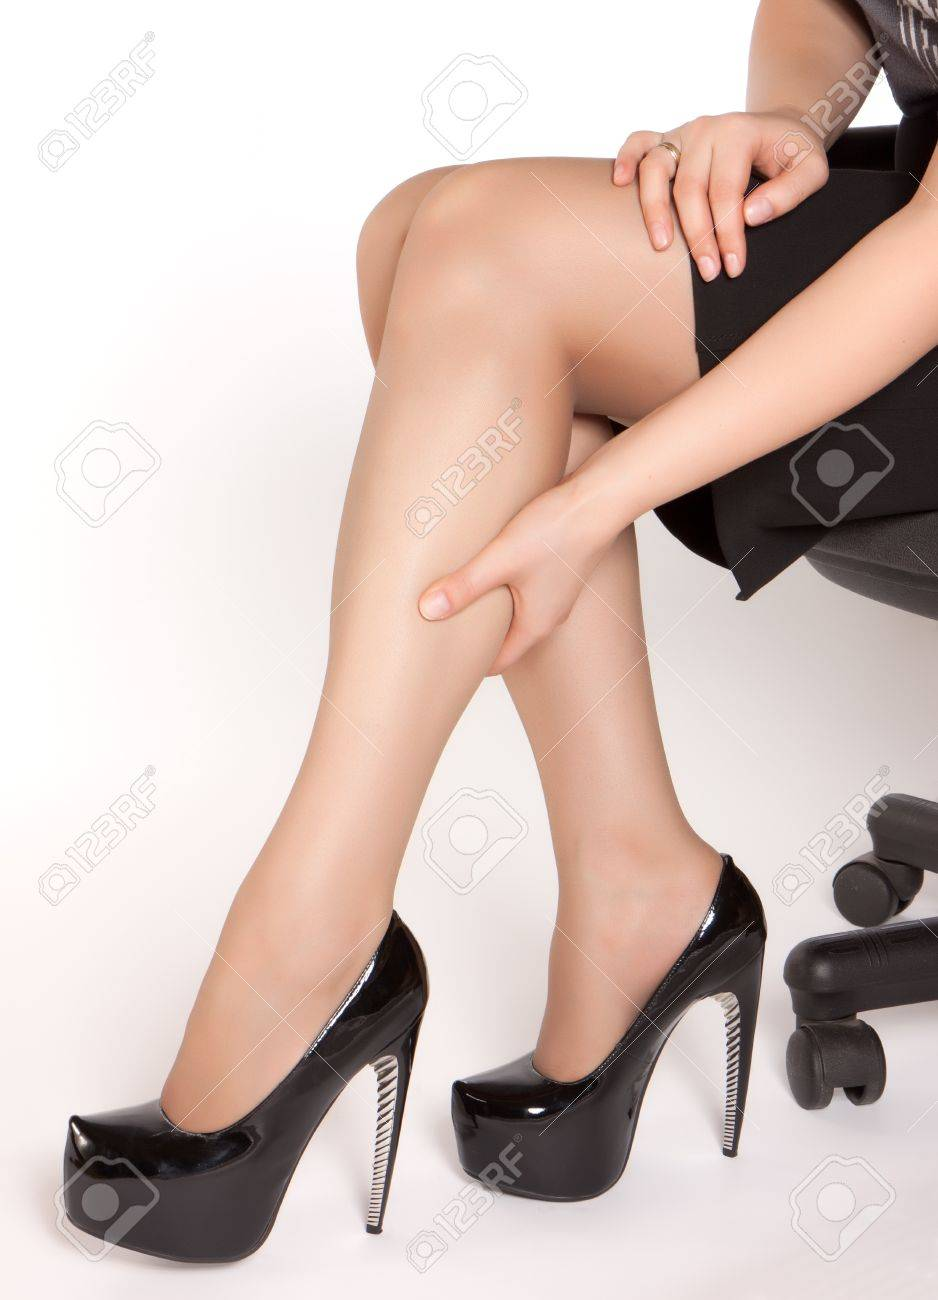 Women Wearing High Heels Black Shoes, Sitting On The Chair And ...